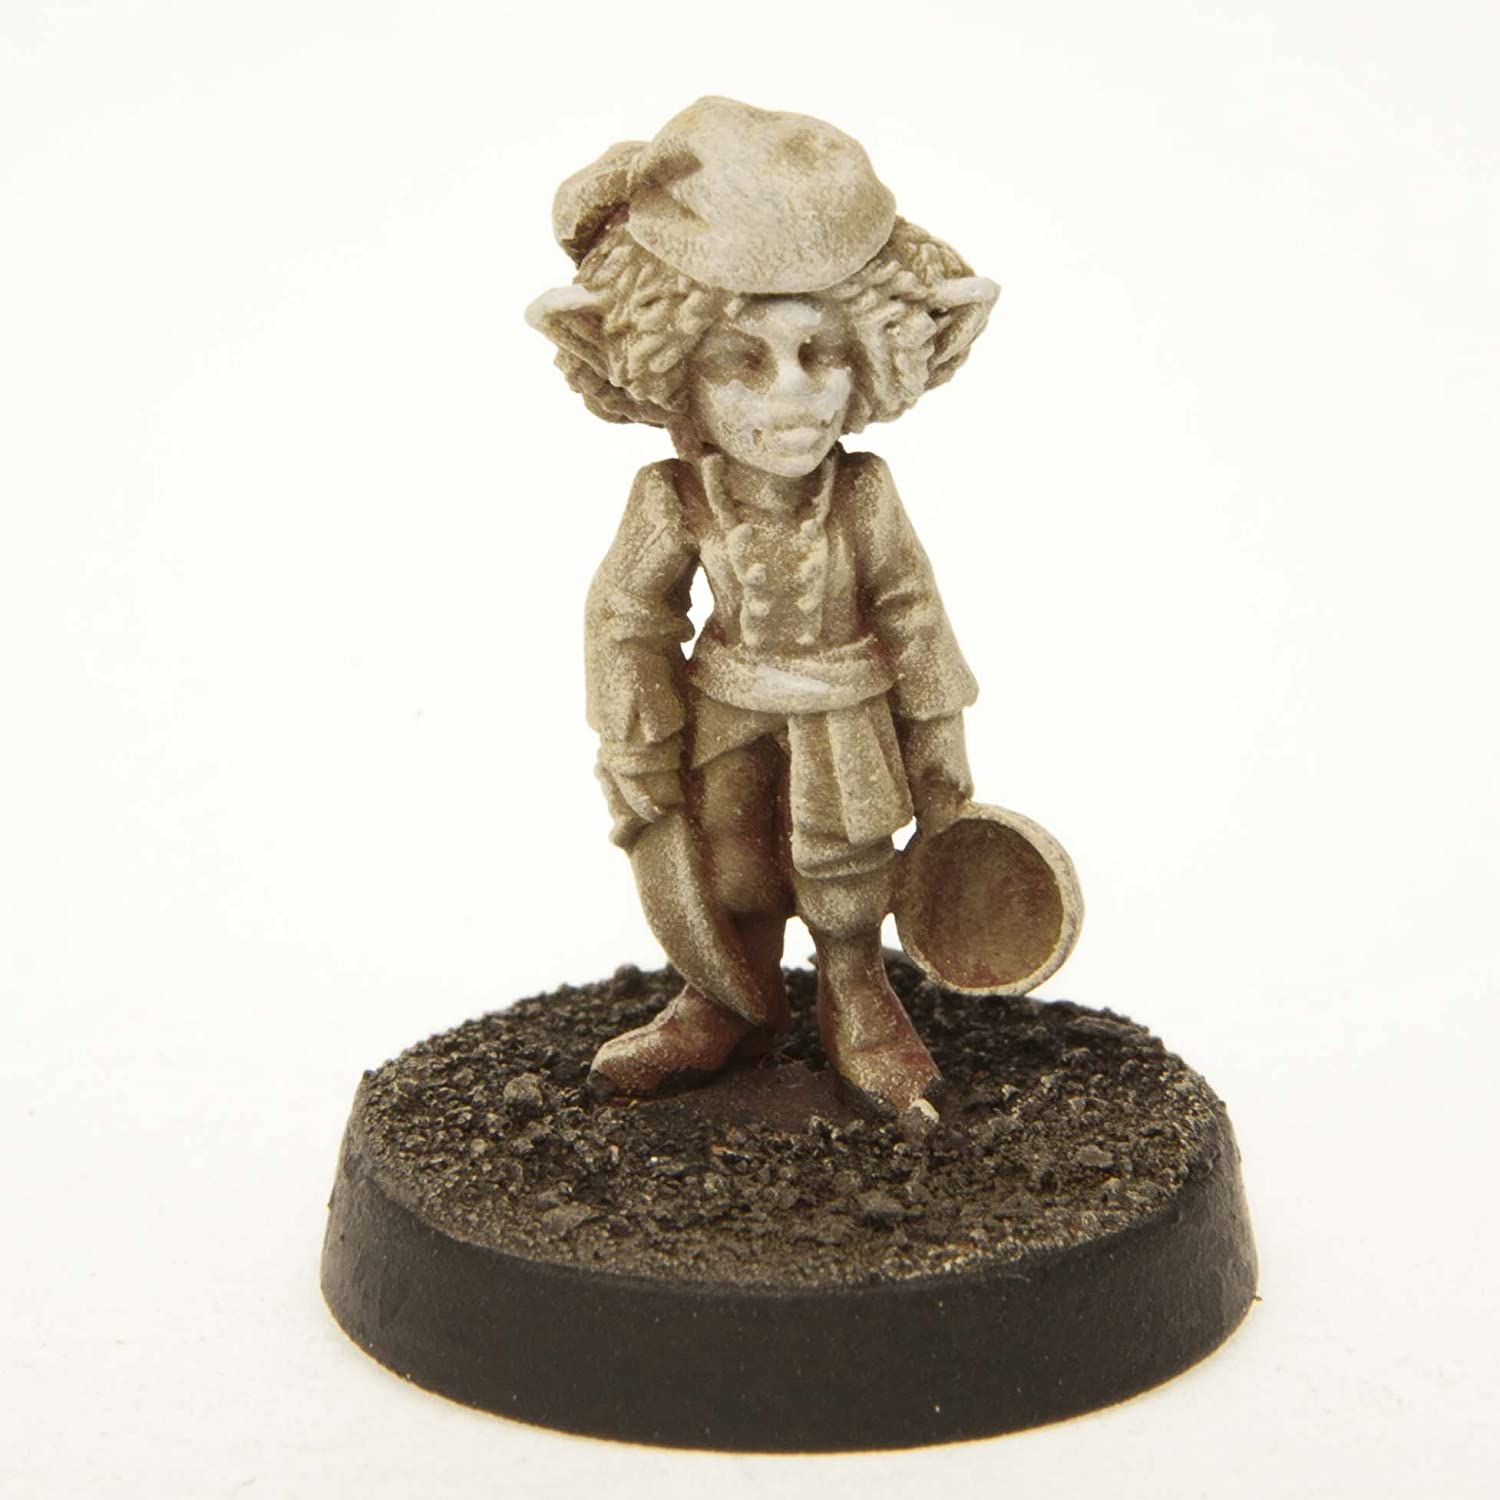 Made in USA for 28mm Scale Table Top War Games Stonehaven Gnome Chef Miniature Figure